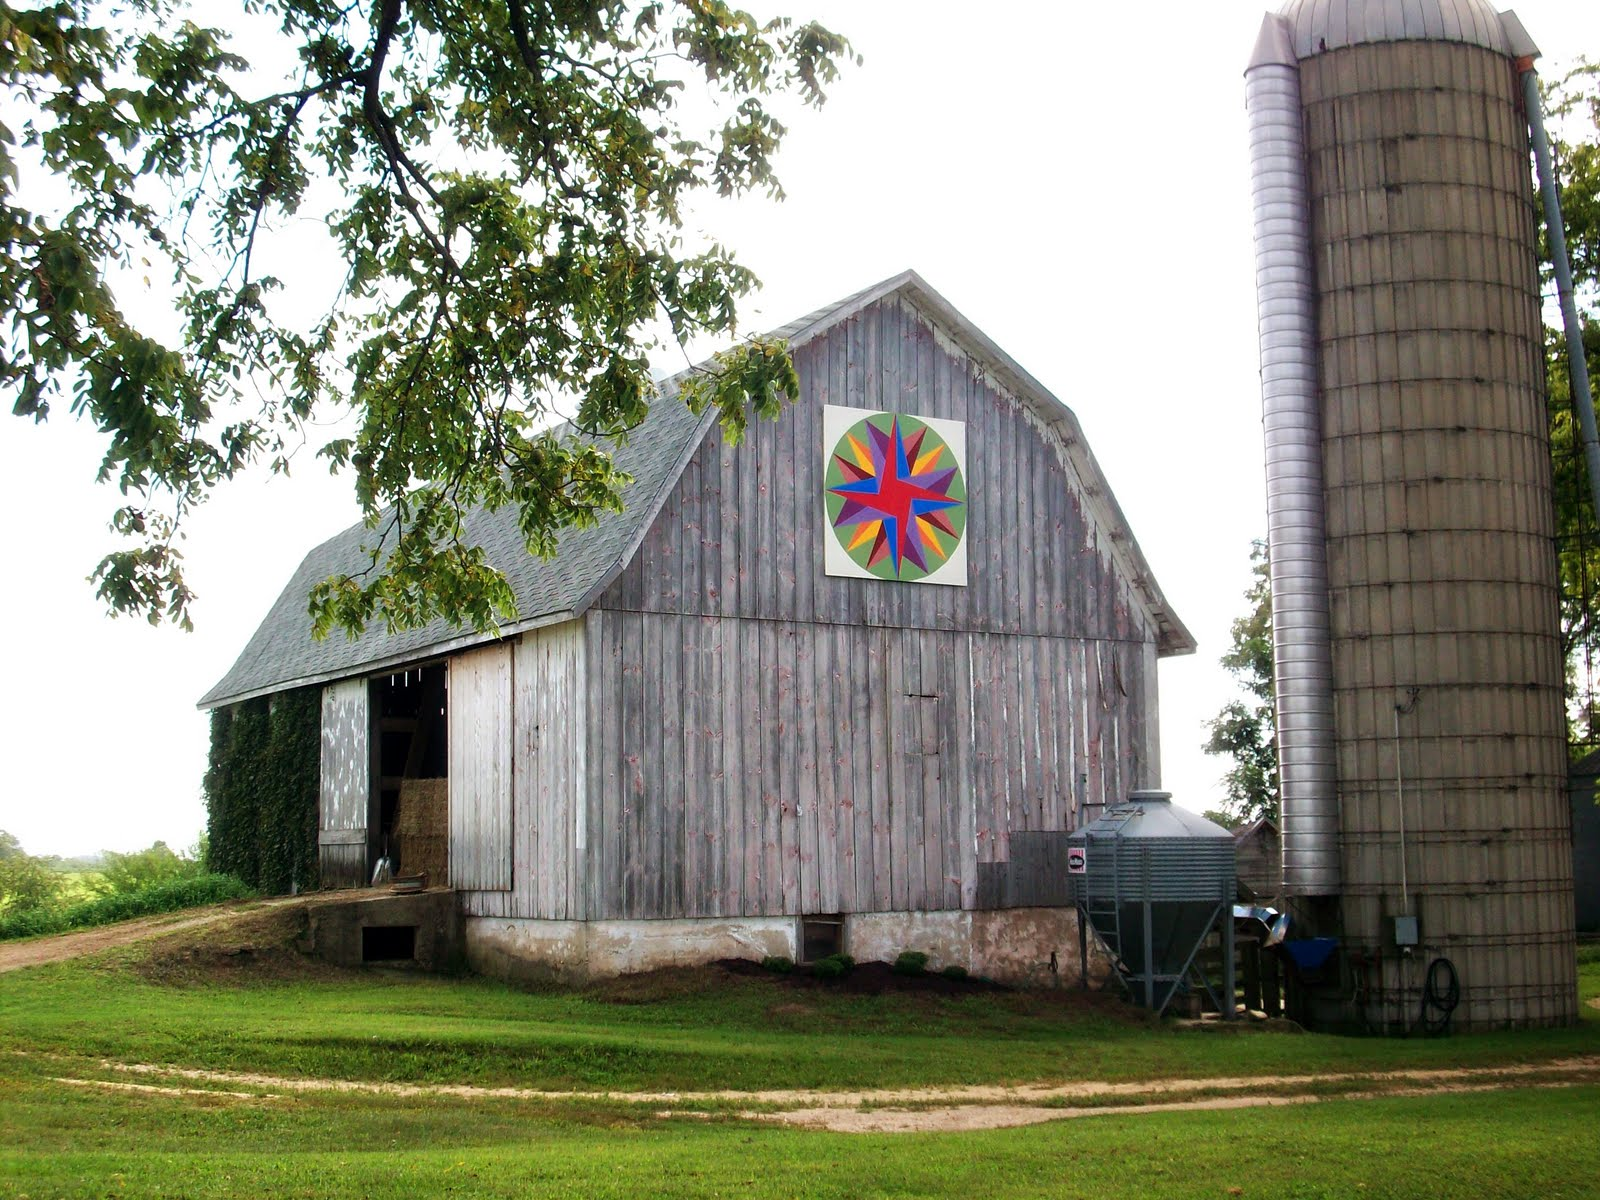 Quilt Patterns On Wisconsin Barns : Barn Quilts and the American Quilt Trail: September 2011